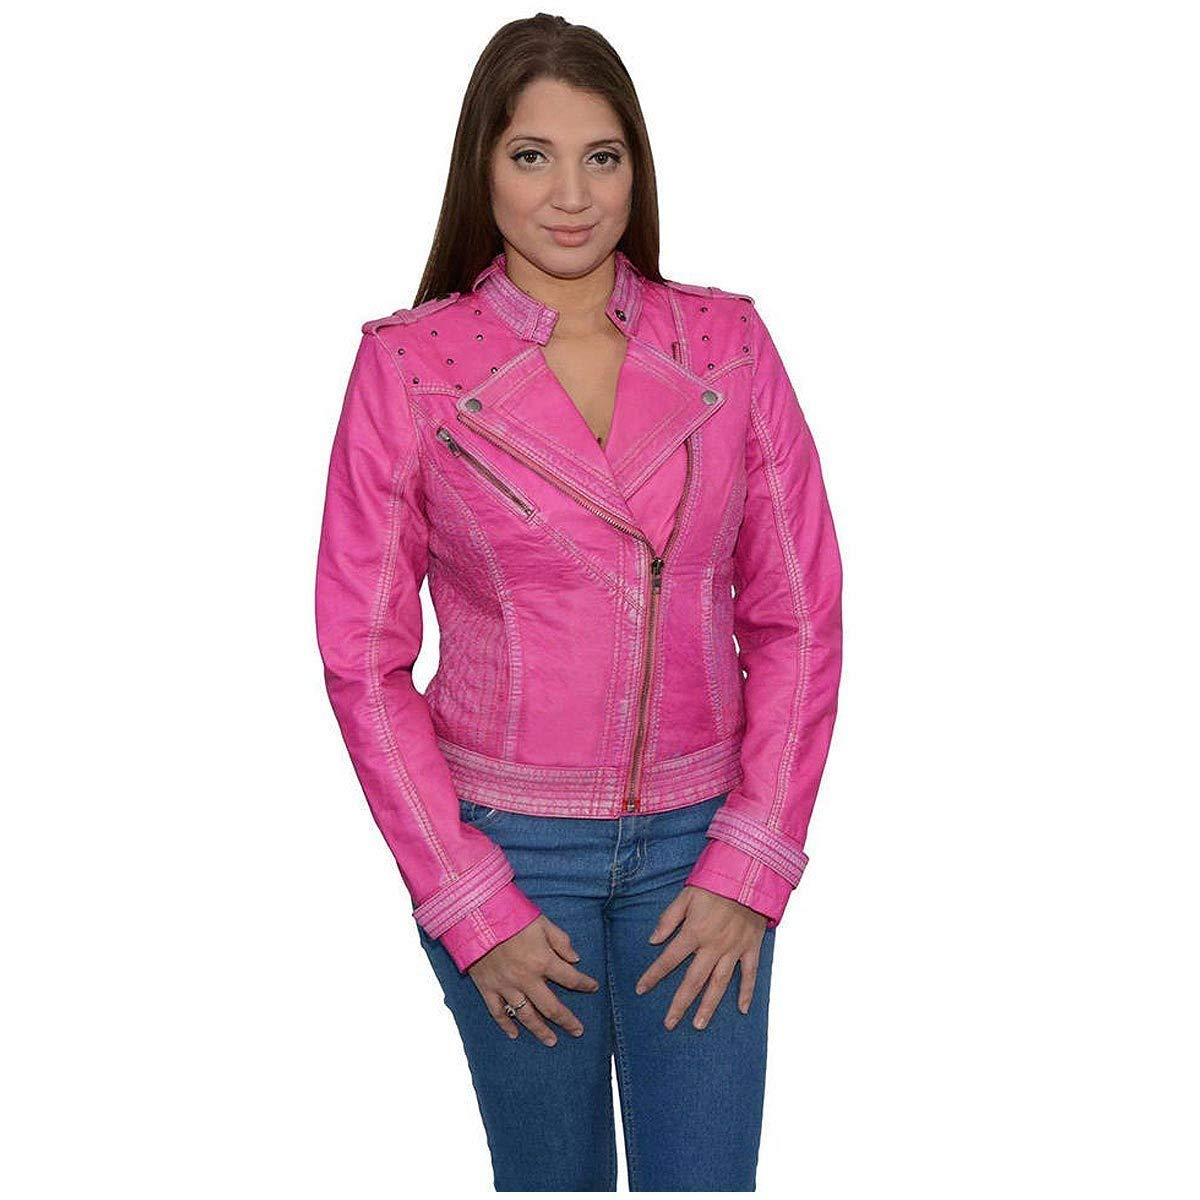 1f7206df9d4 Milwaukee Leather Womens Asymmetrical Studded Pink Sheepskin Jacket -  2X-Large